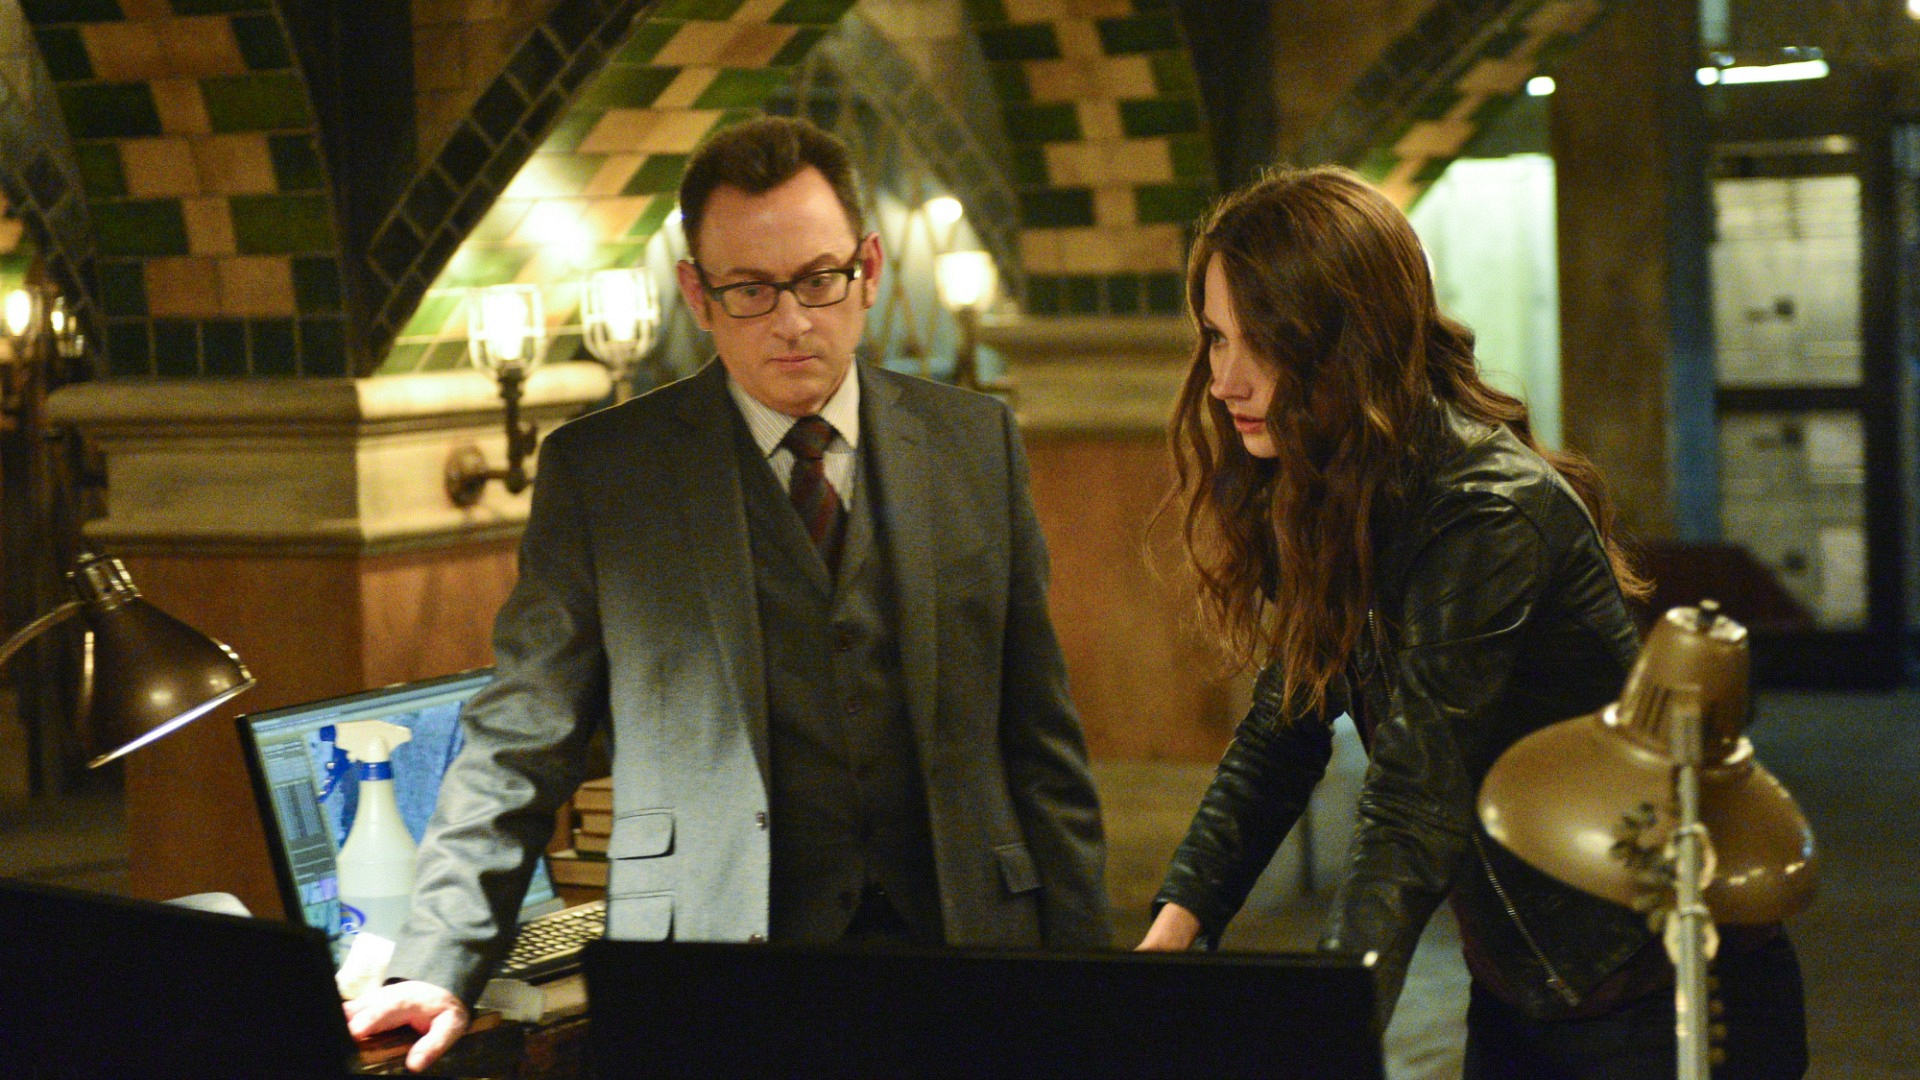 Root learns something interesting.